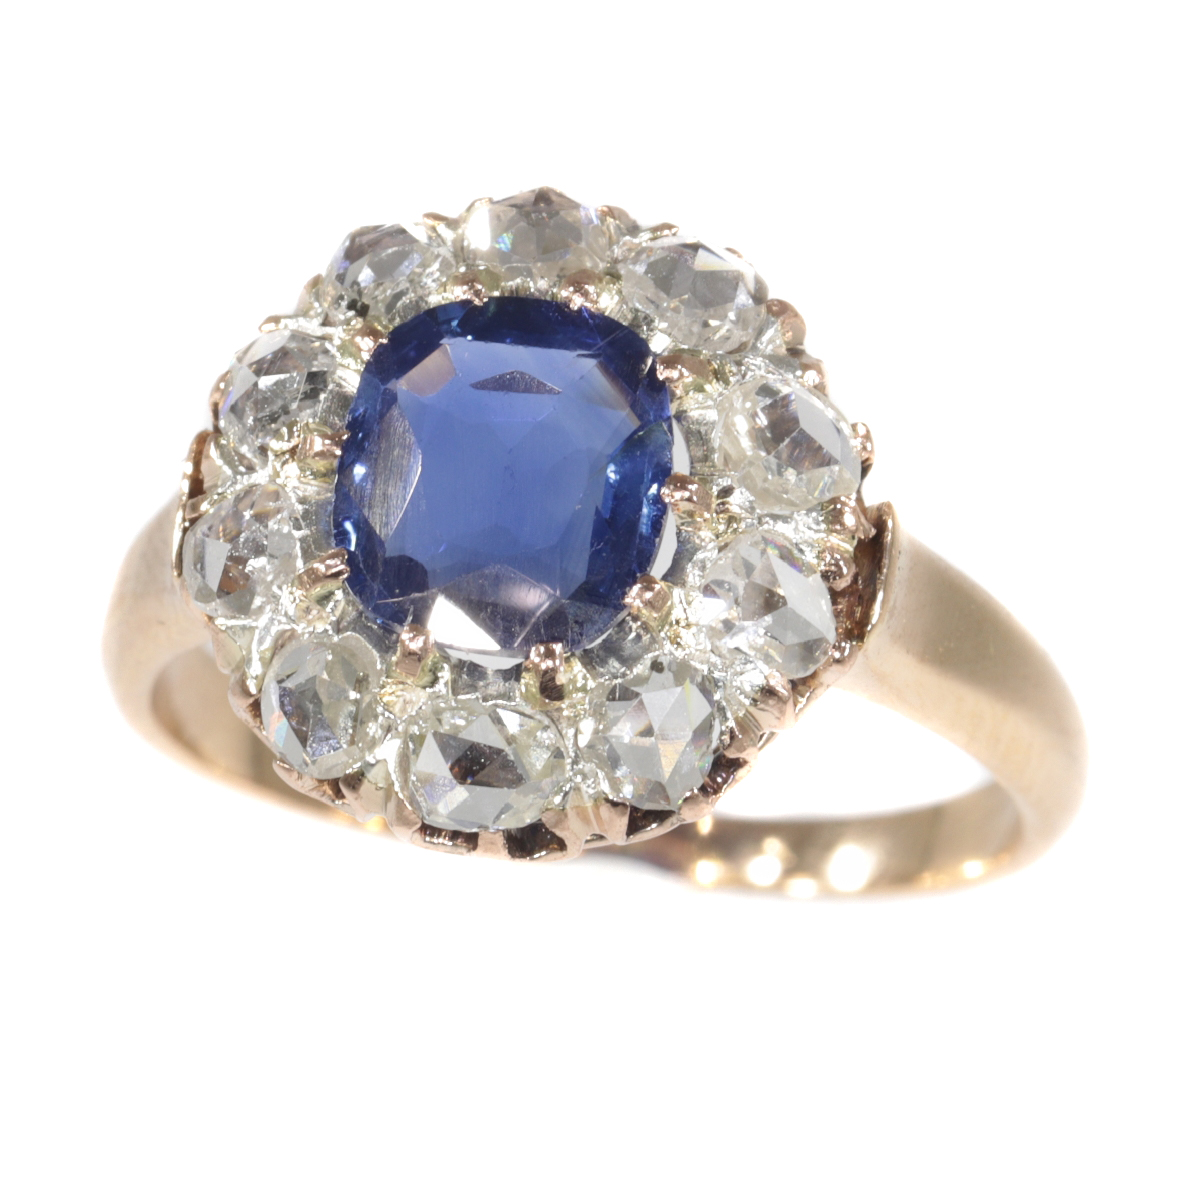 Victorian antique engagement ring with natural sapphire and ten rose cut diamonds